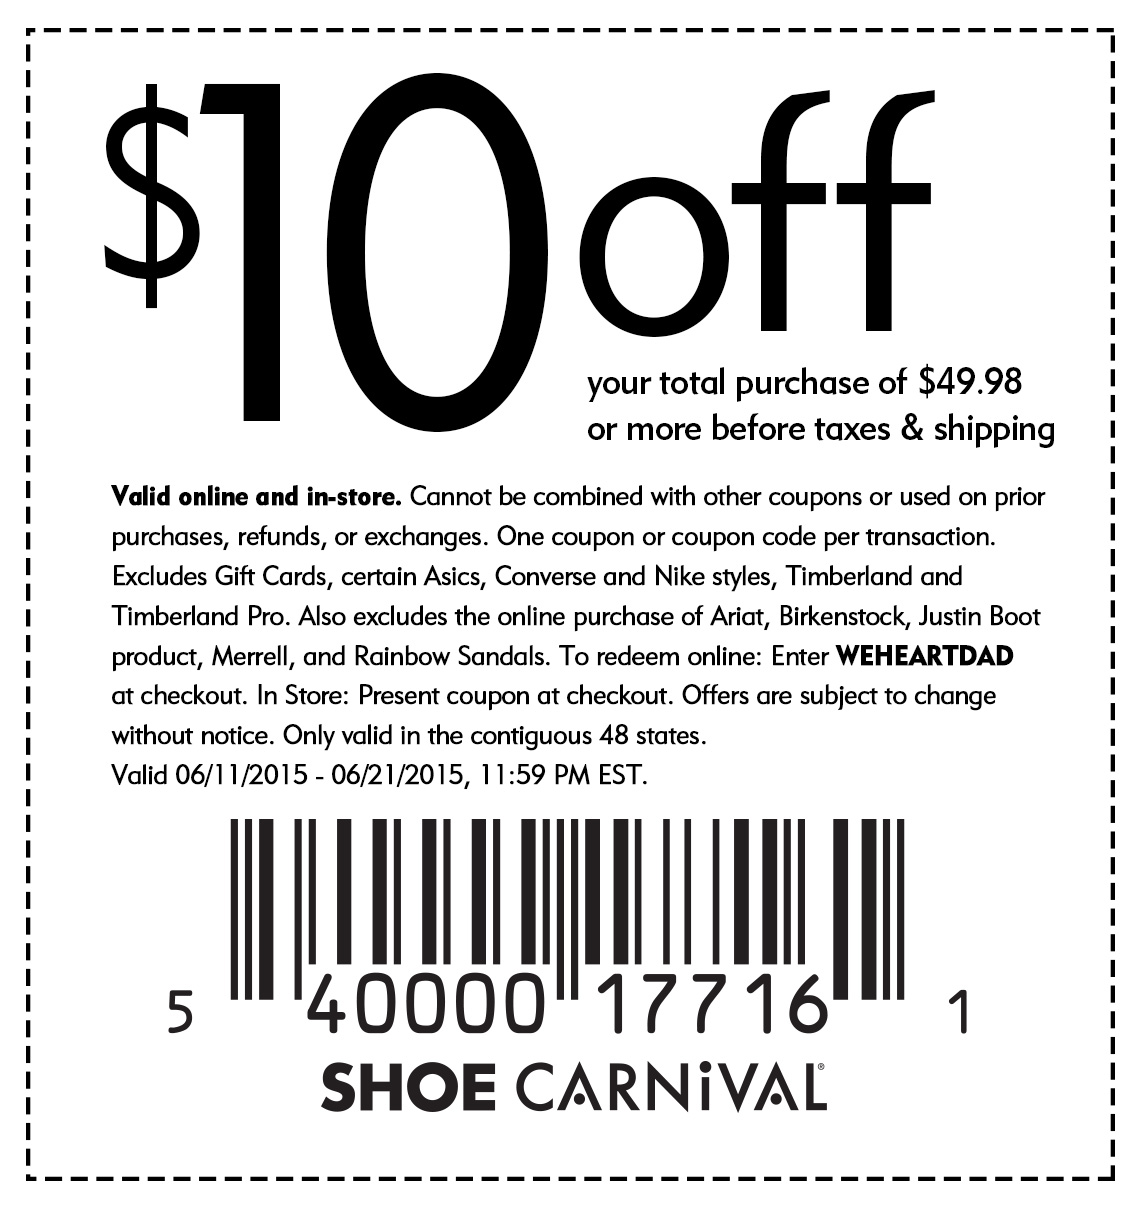 Shoe Carnival Coupon March 2017 $10 off $50 at Shoe Carnival, or online via promo code WEHEARTDAD